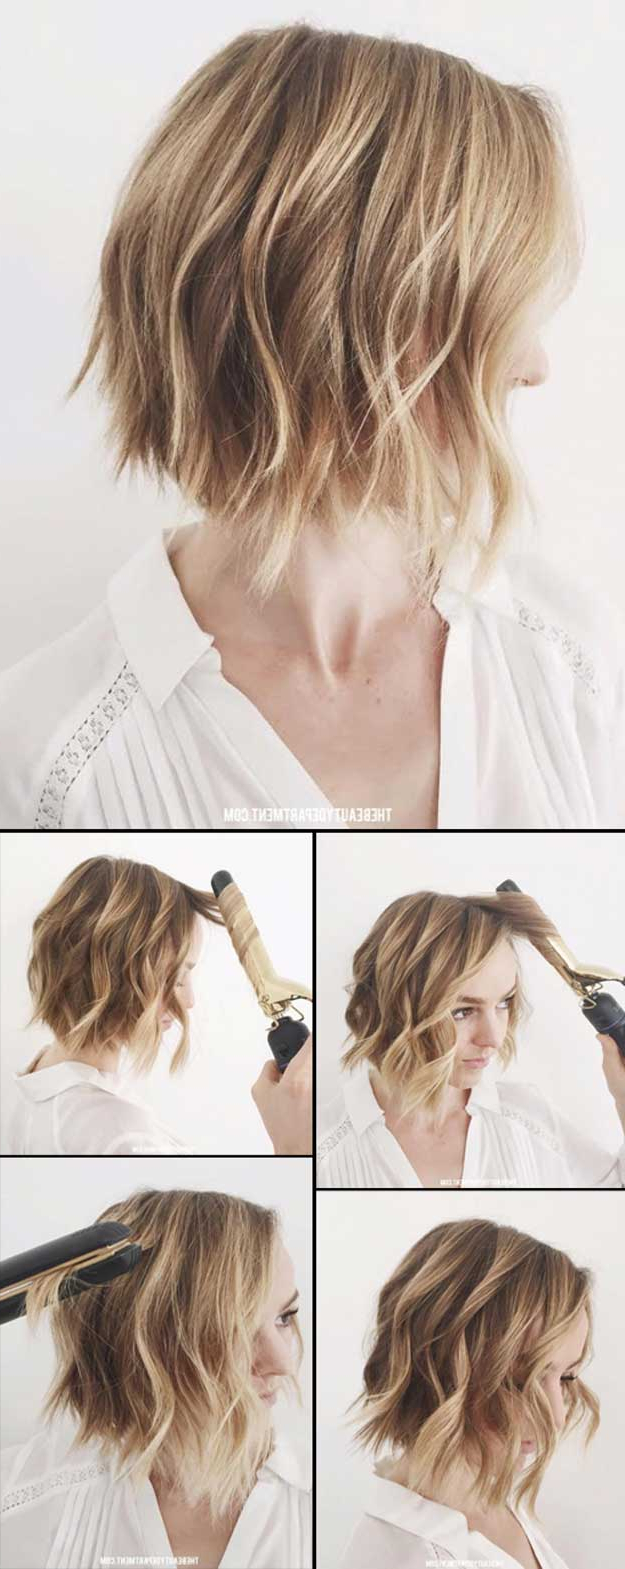 33 Best Hairstyles For Teens – The Goddess In Short Hairstyles For Teenage Girls (View 3 of 25)